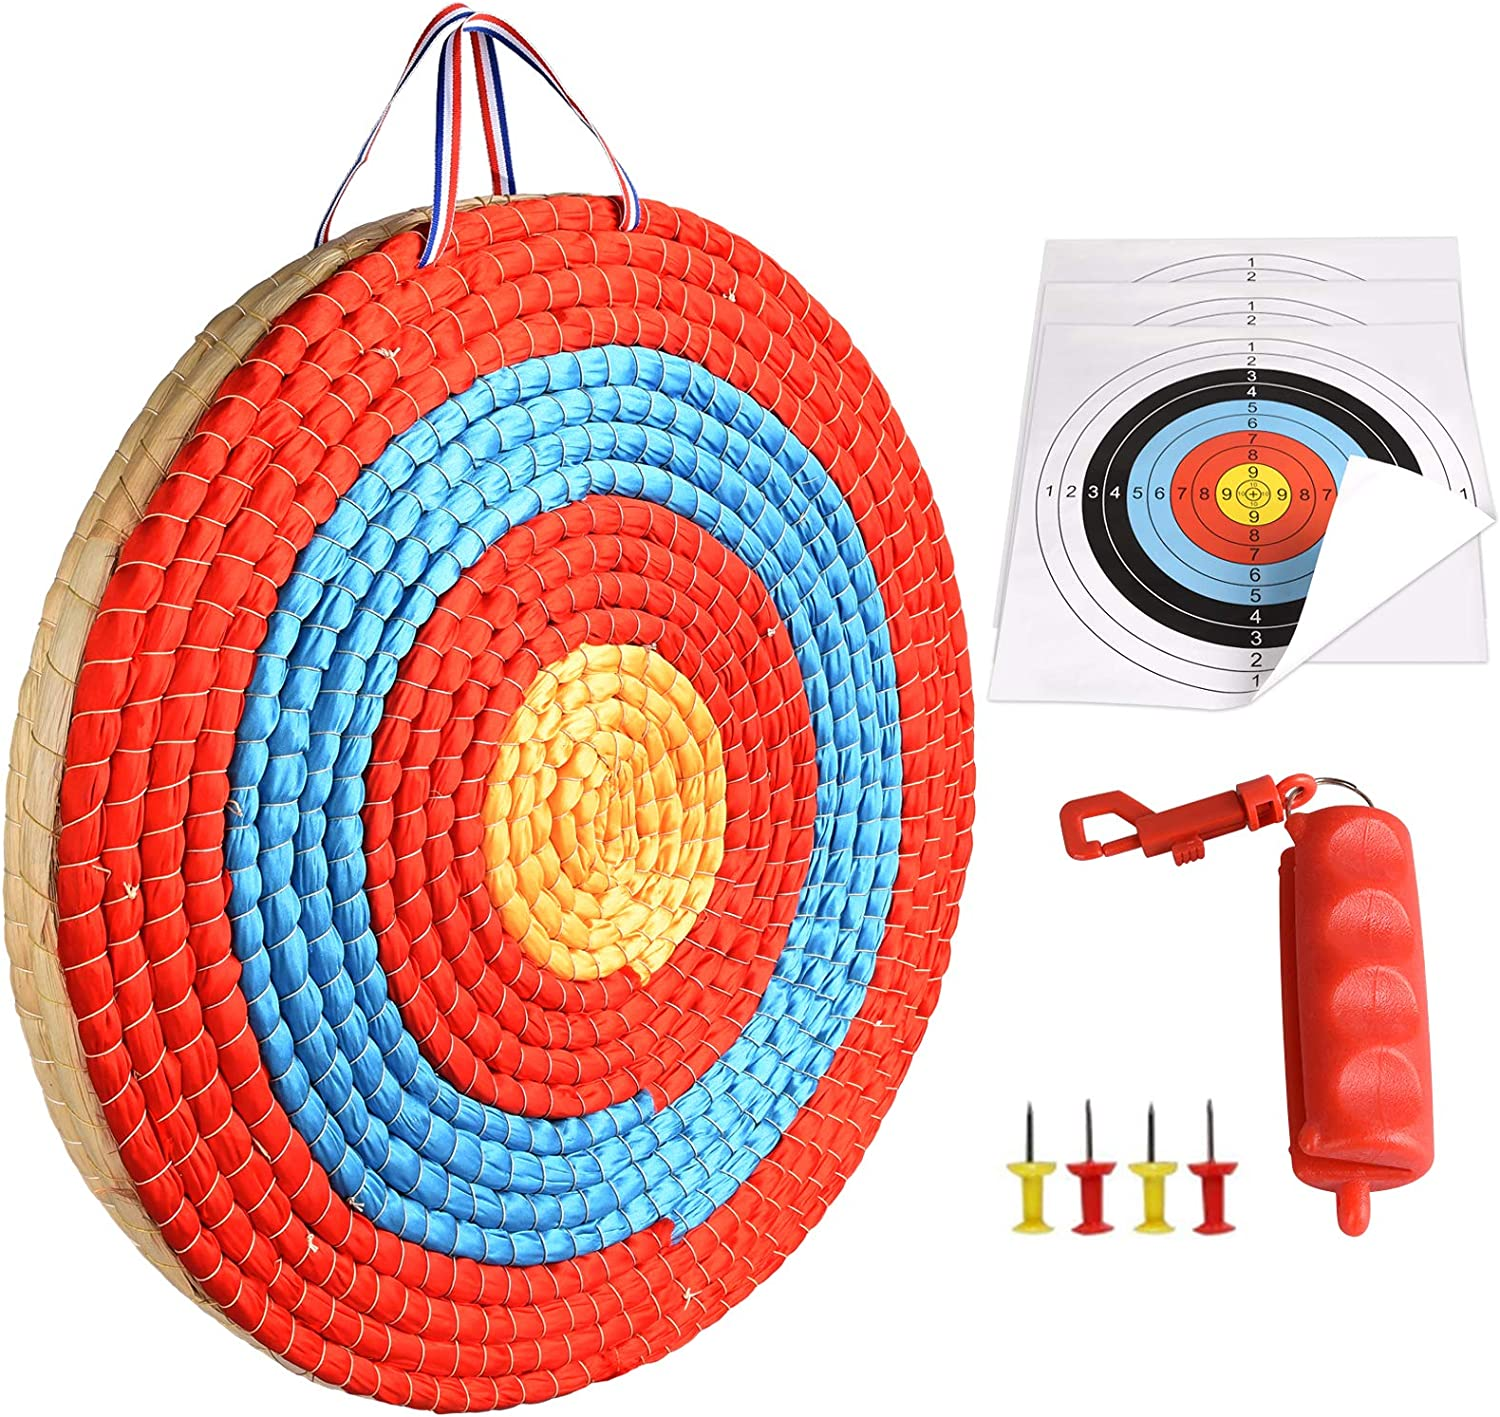 ALANGDUO 3 Layers 20 inch Archery Target Traditional Solid Straw Round Archery Target 2.3 inch Thickness Hand-Made Arrows Target for Outdoor Shooting Practice with 4 Paper Target Face : Sports & Outdoors